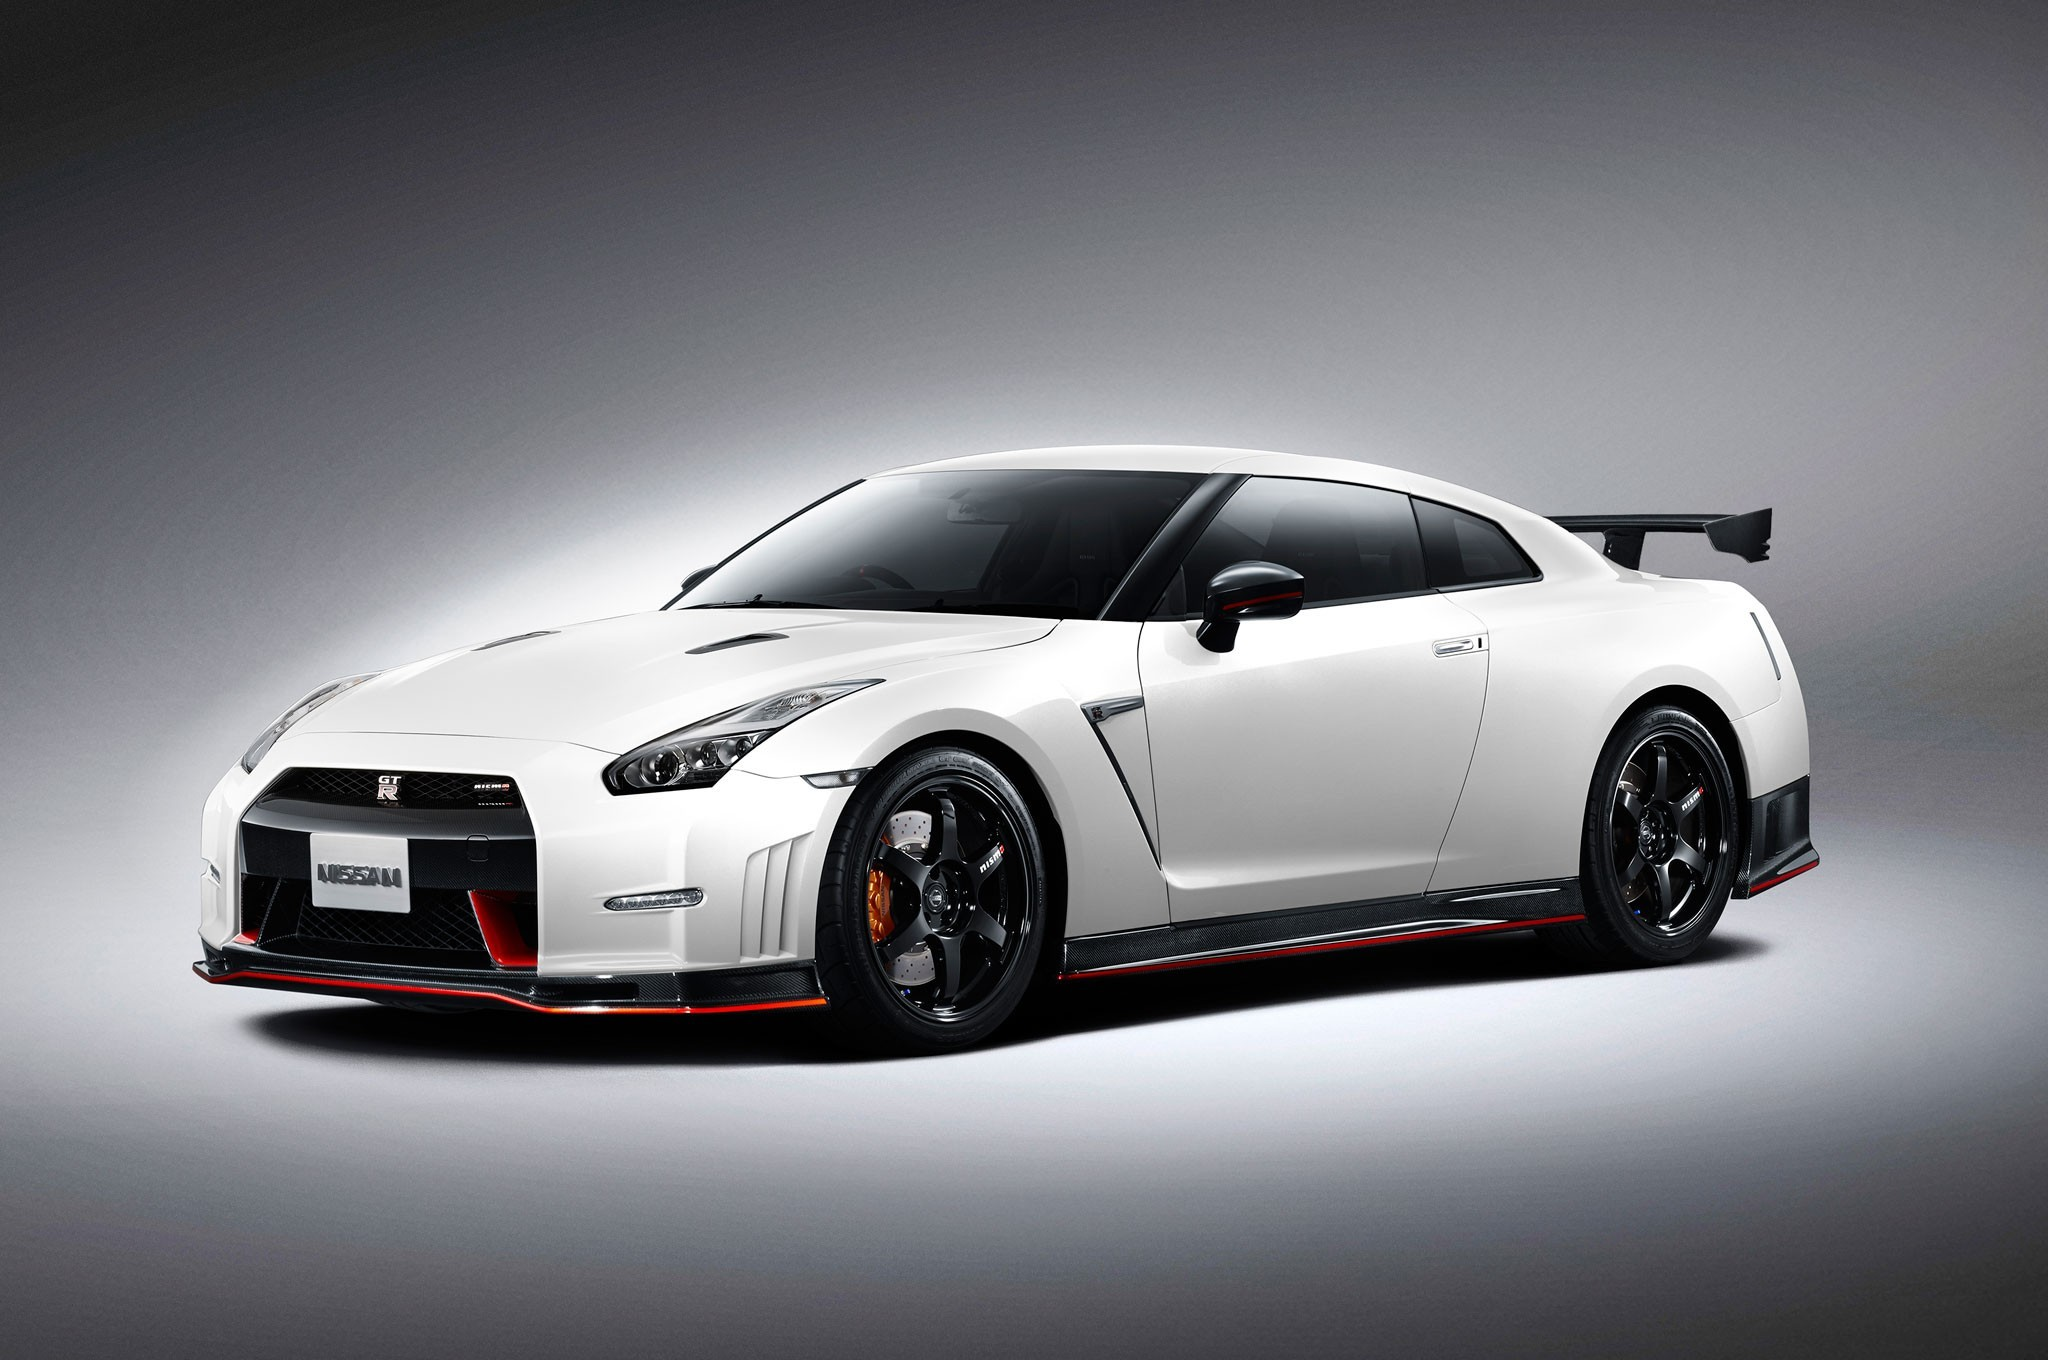 Res: 2048x1360, Nissan Gtr Nismo High Quality Wallpaper Desktop Wallpapers HD 4k Windows 10  Mac Apple Colourful Images Backgrounds Free